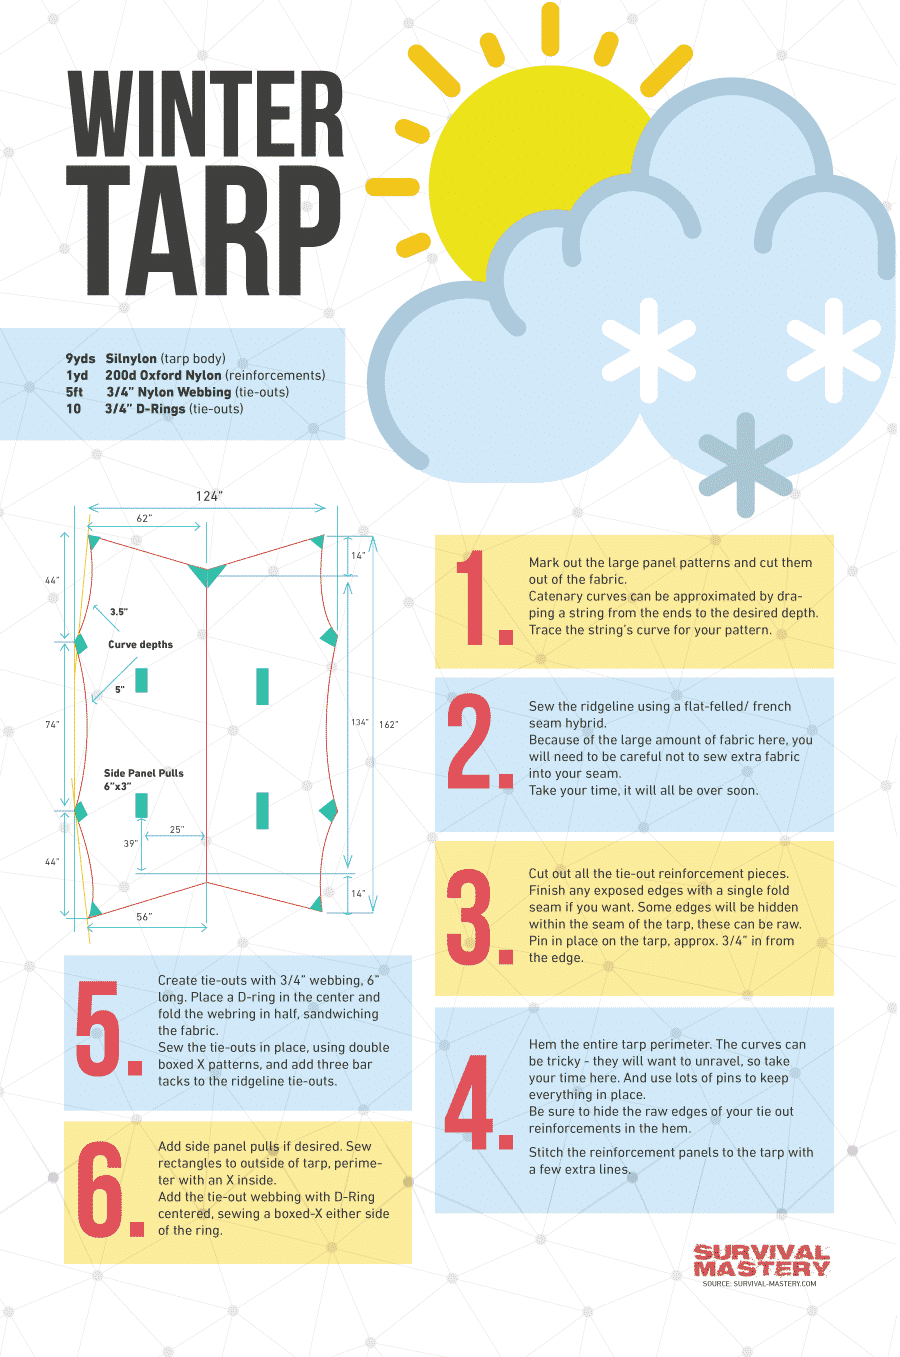 Winter tarp infographic